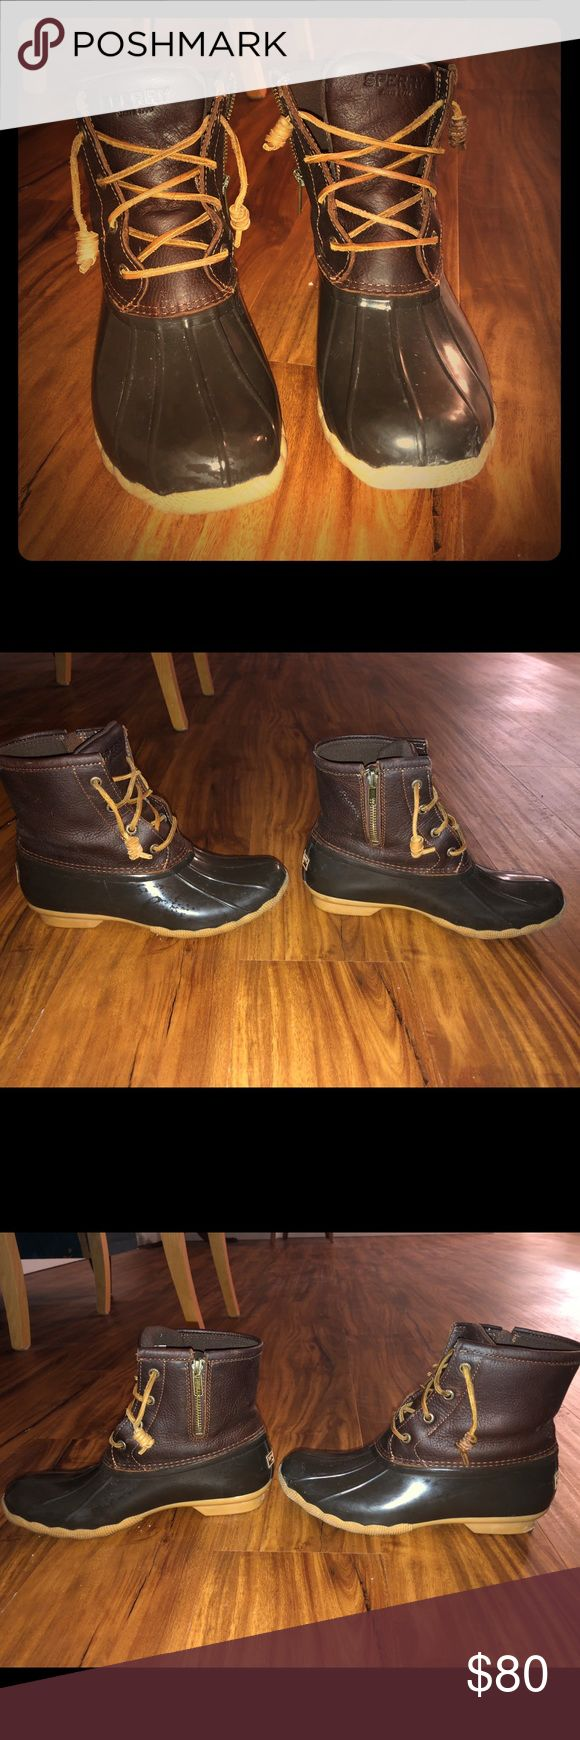 Sperry duck boots- women's size 7.5 Only worn twice, in great condition! Selling for $80. Size 7.5. Sperry Shoes Winter & Rain Boots